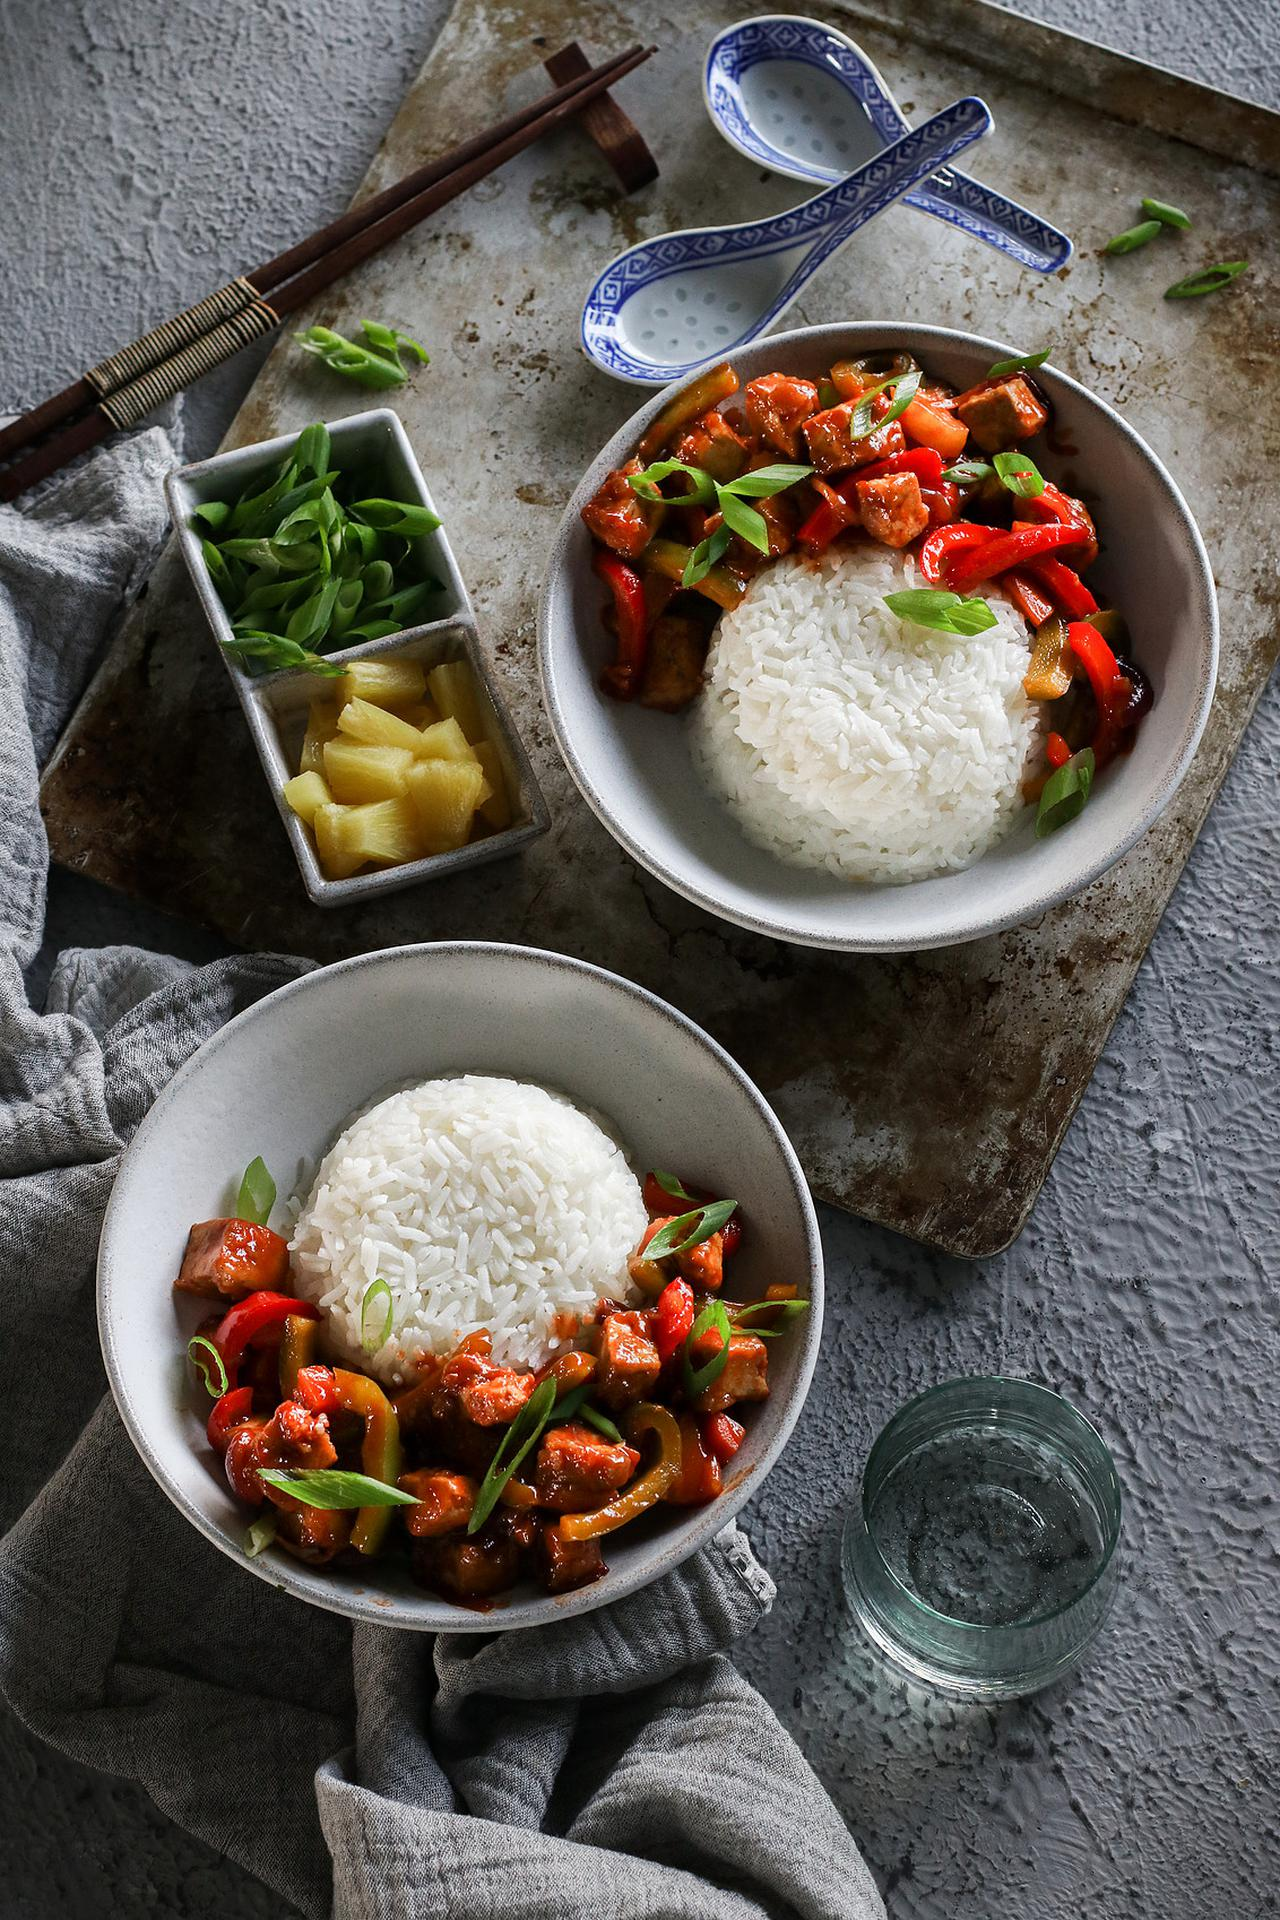 Main image of Sweet and Sour Tofu Stir Fry